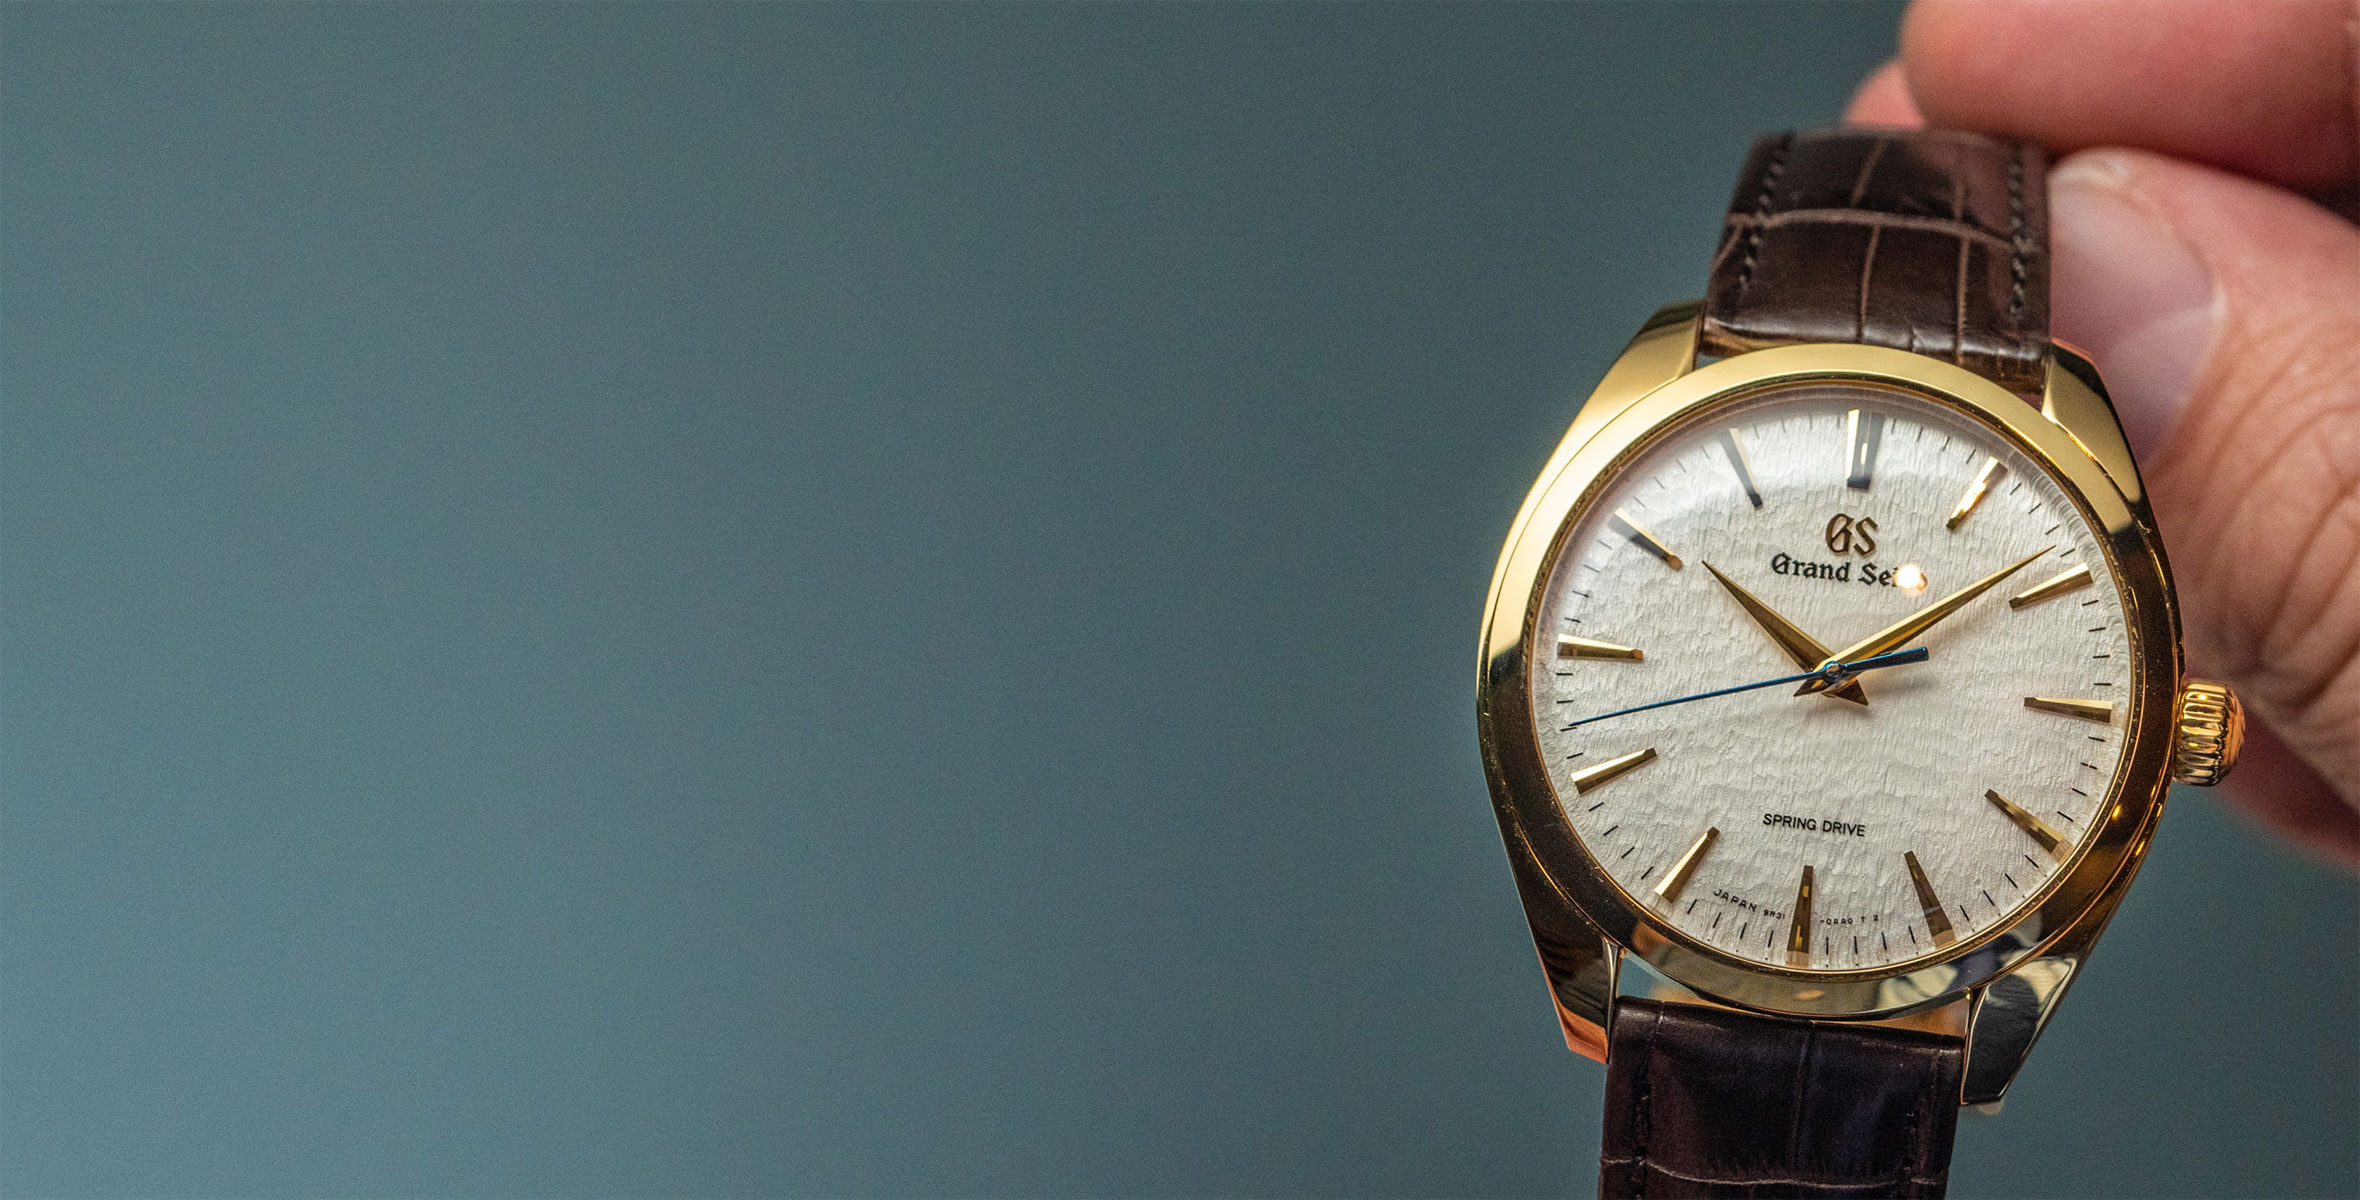 HANDS-ON: Grand Seiko's SBGY002, a hot new hand-wound take on the Snowflake